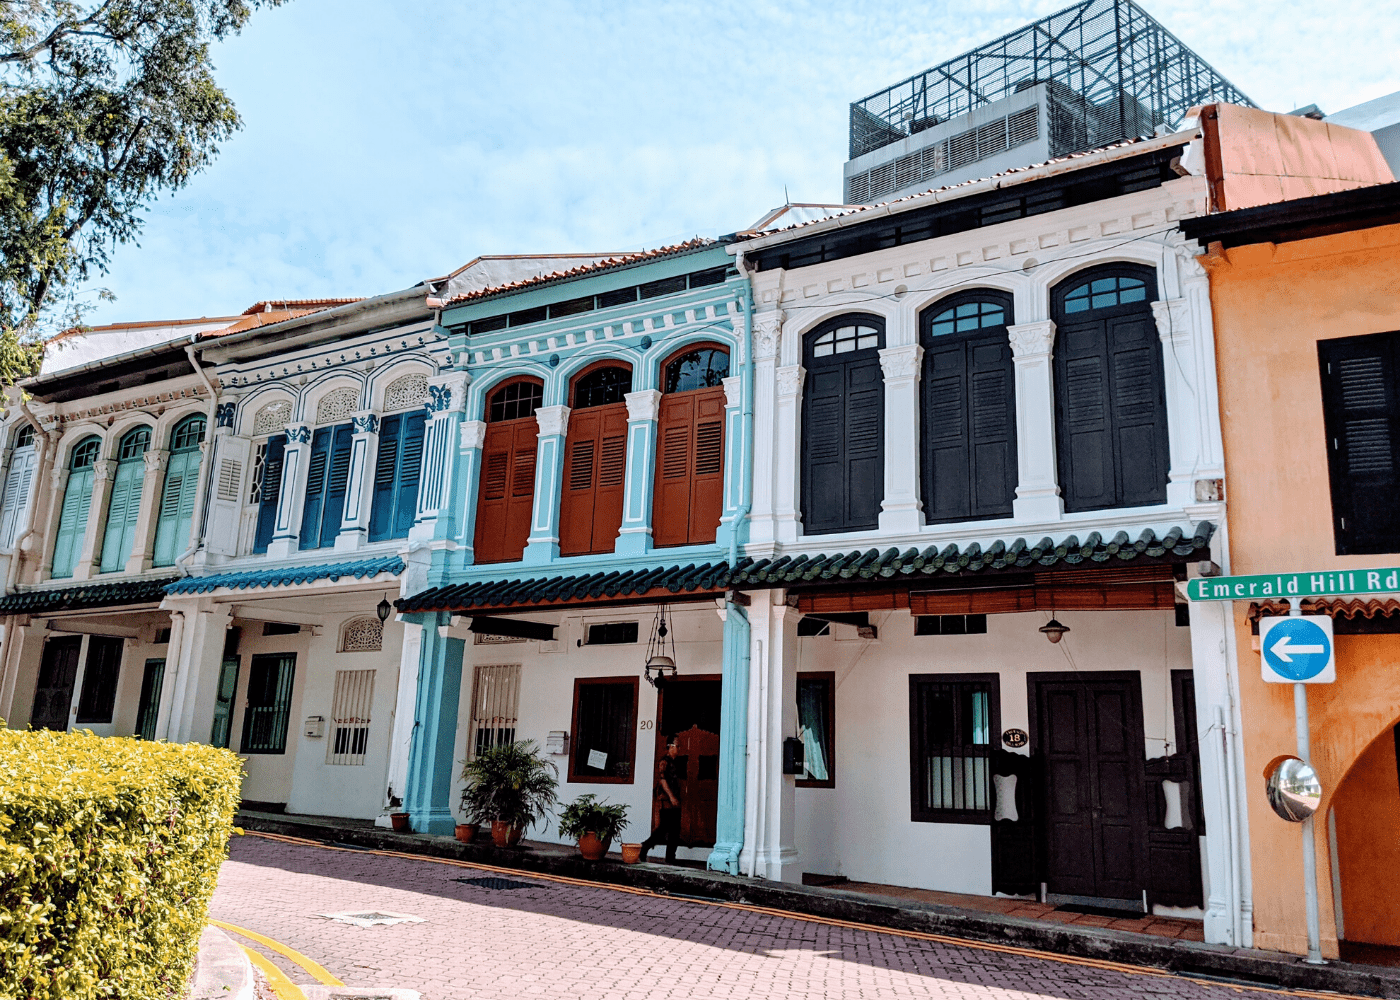 Peek into Orchard Road's past with our guide to the history and heritage of Emerald Hill